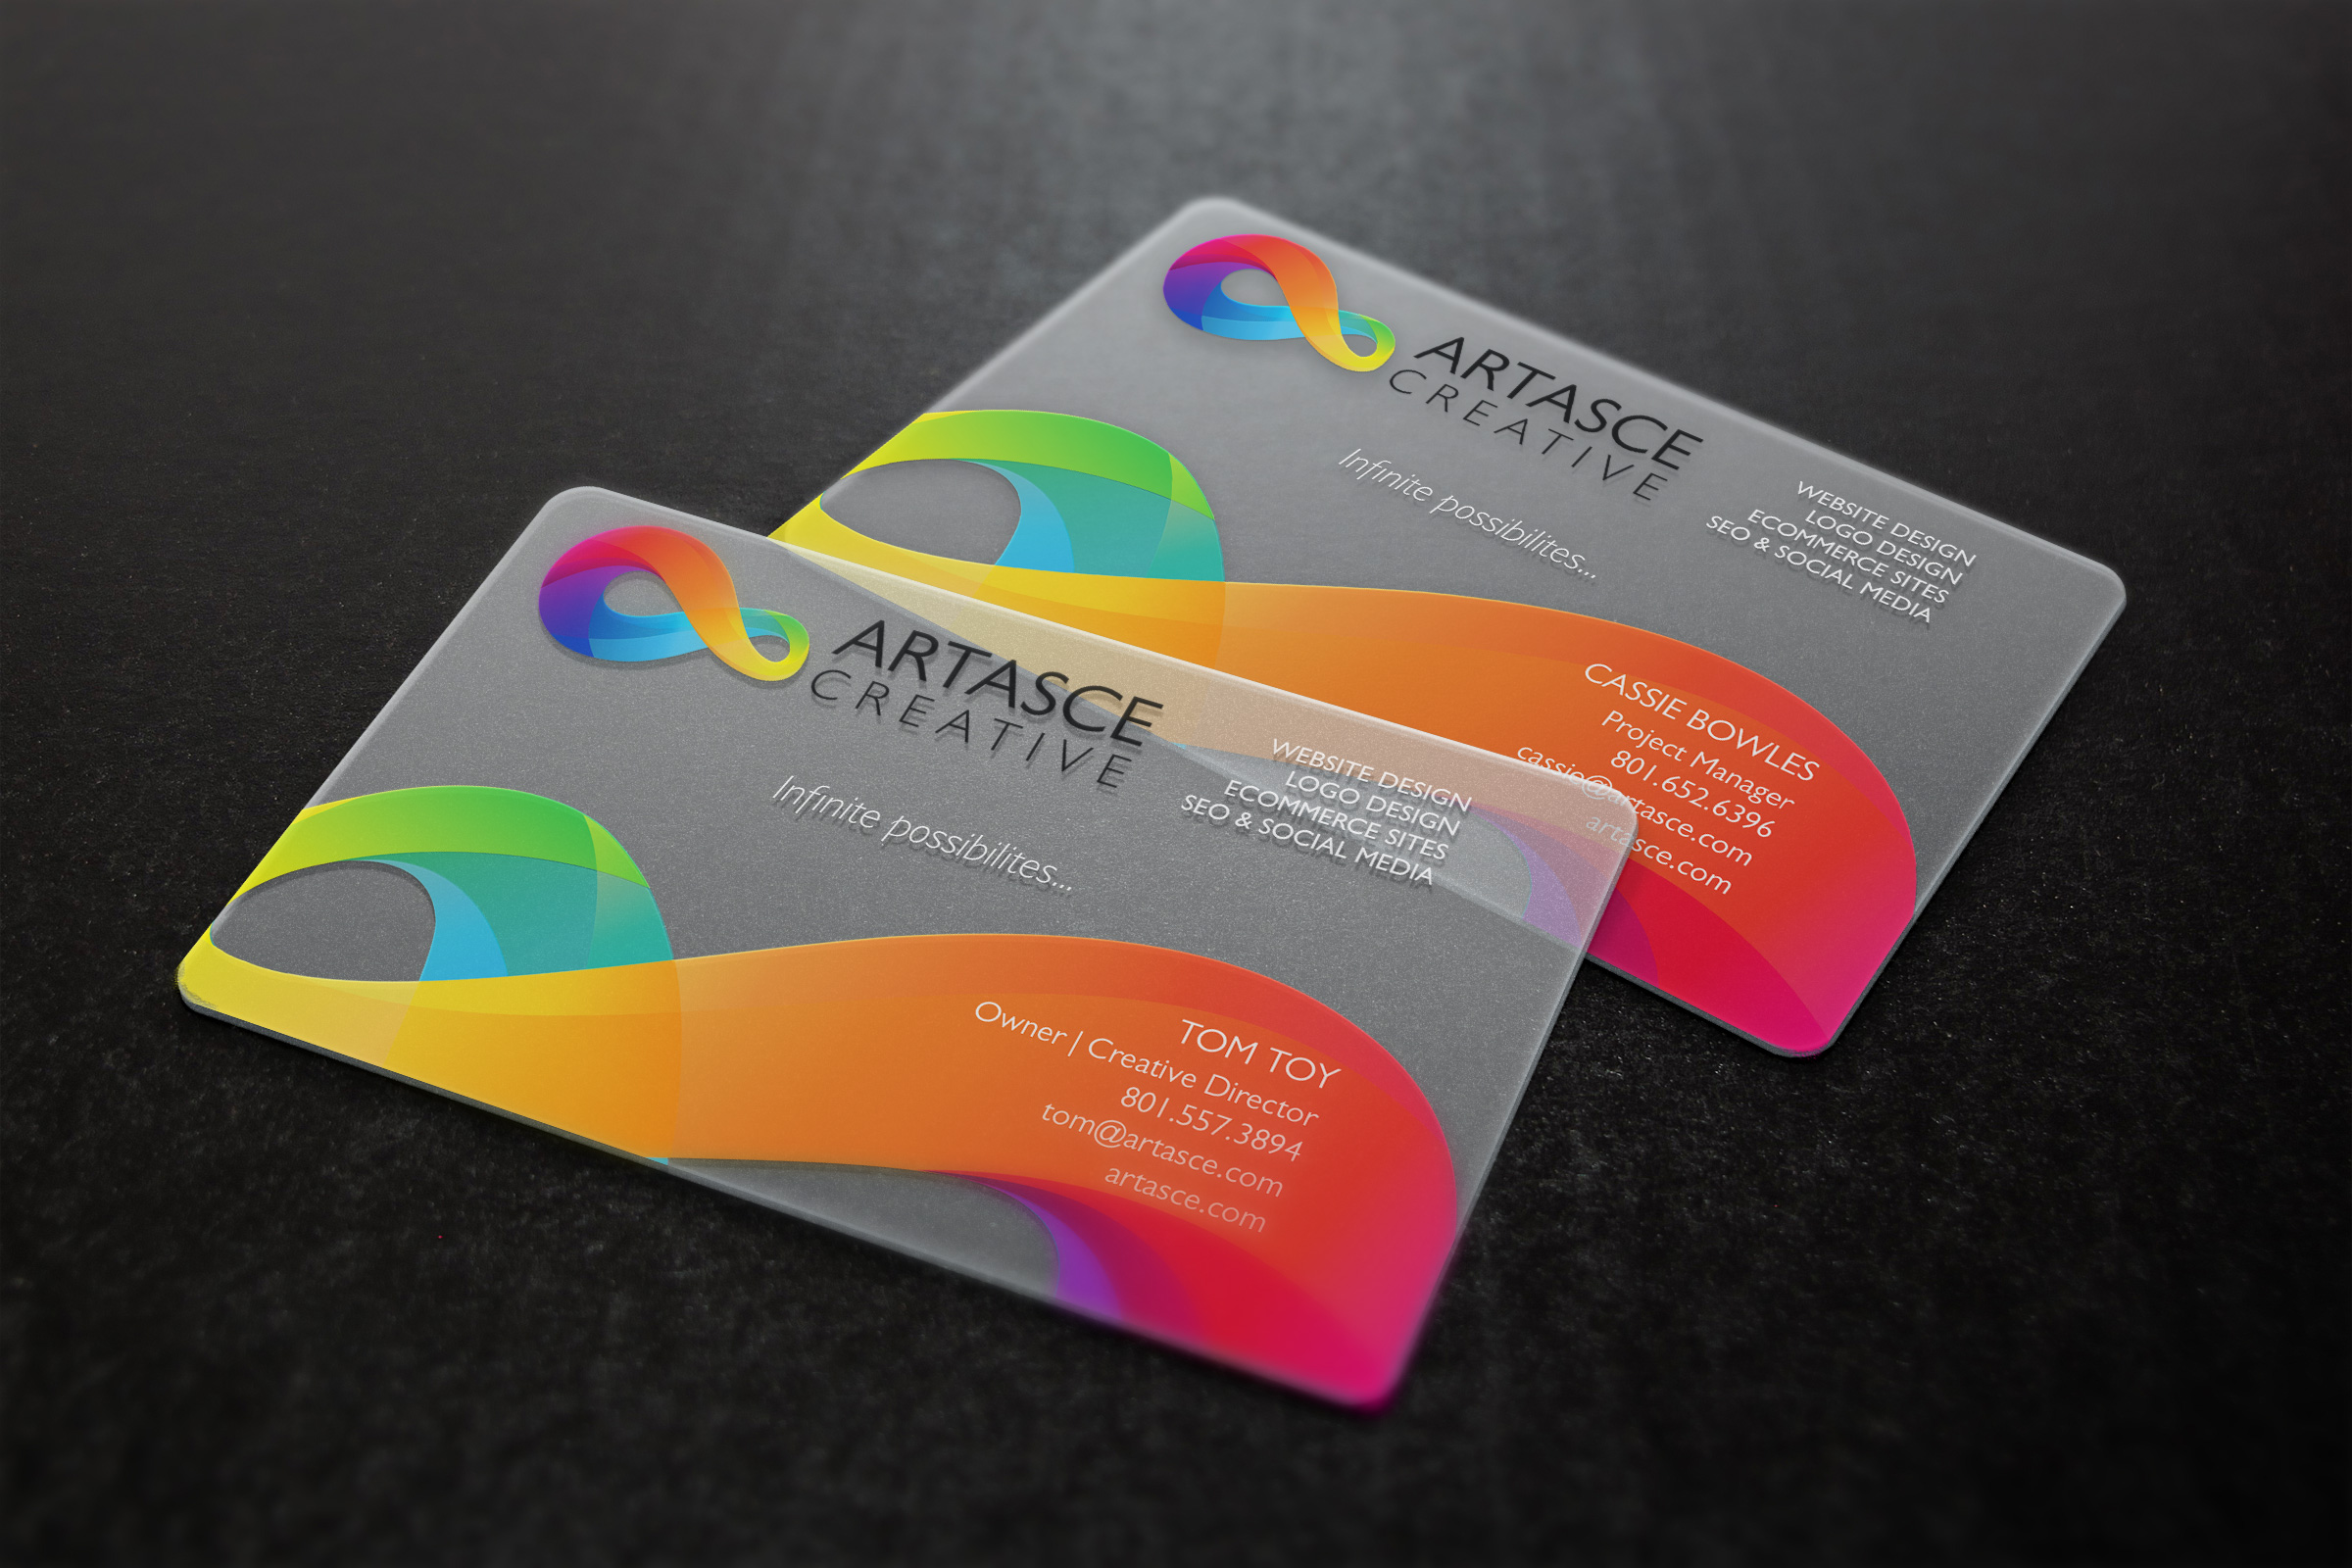 Clear plastic business cards artasce creative clear plastic business cards colourmoves